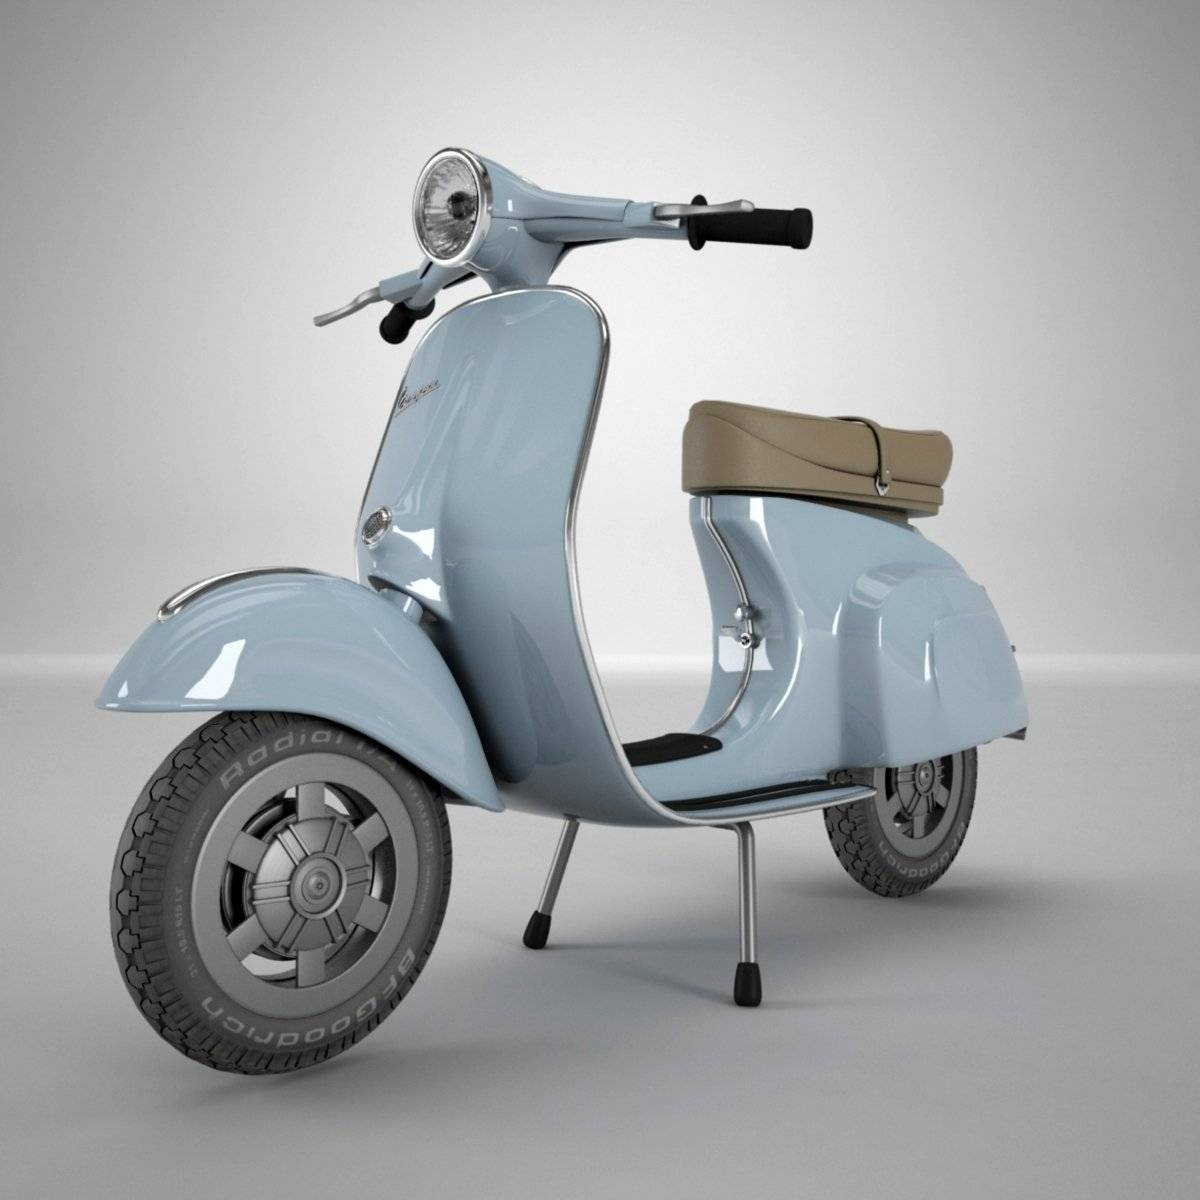 Vespa 3D Model In Motorcycle 3Dexport Intended For Latest Vespa 3D Wall Art (View 14 of 20)